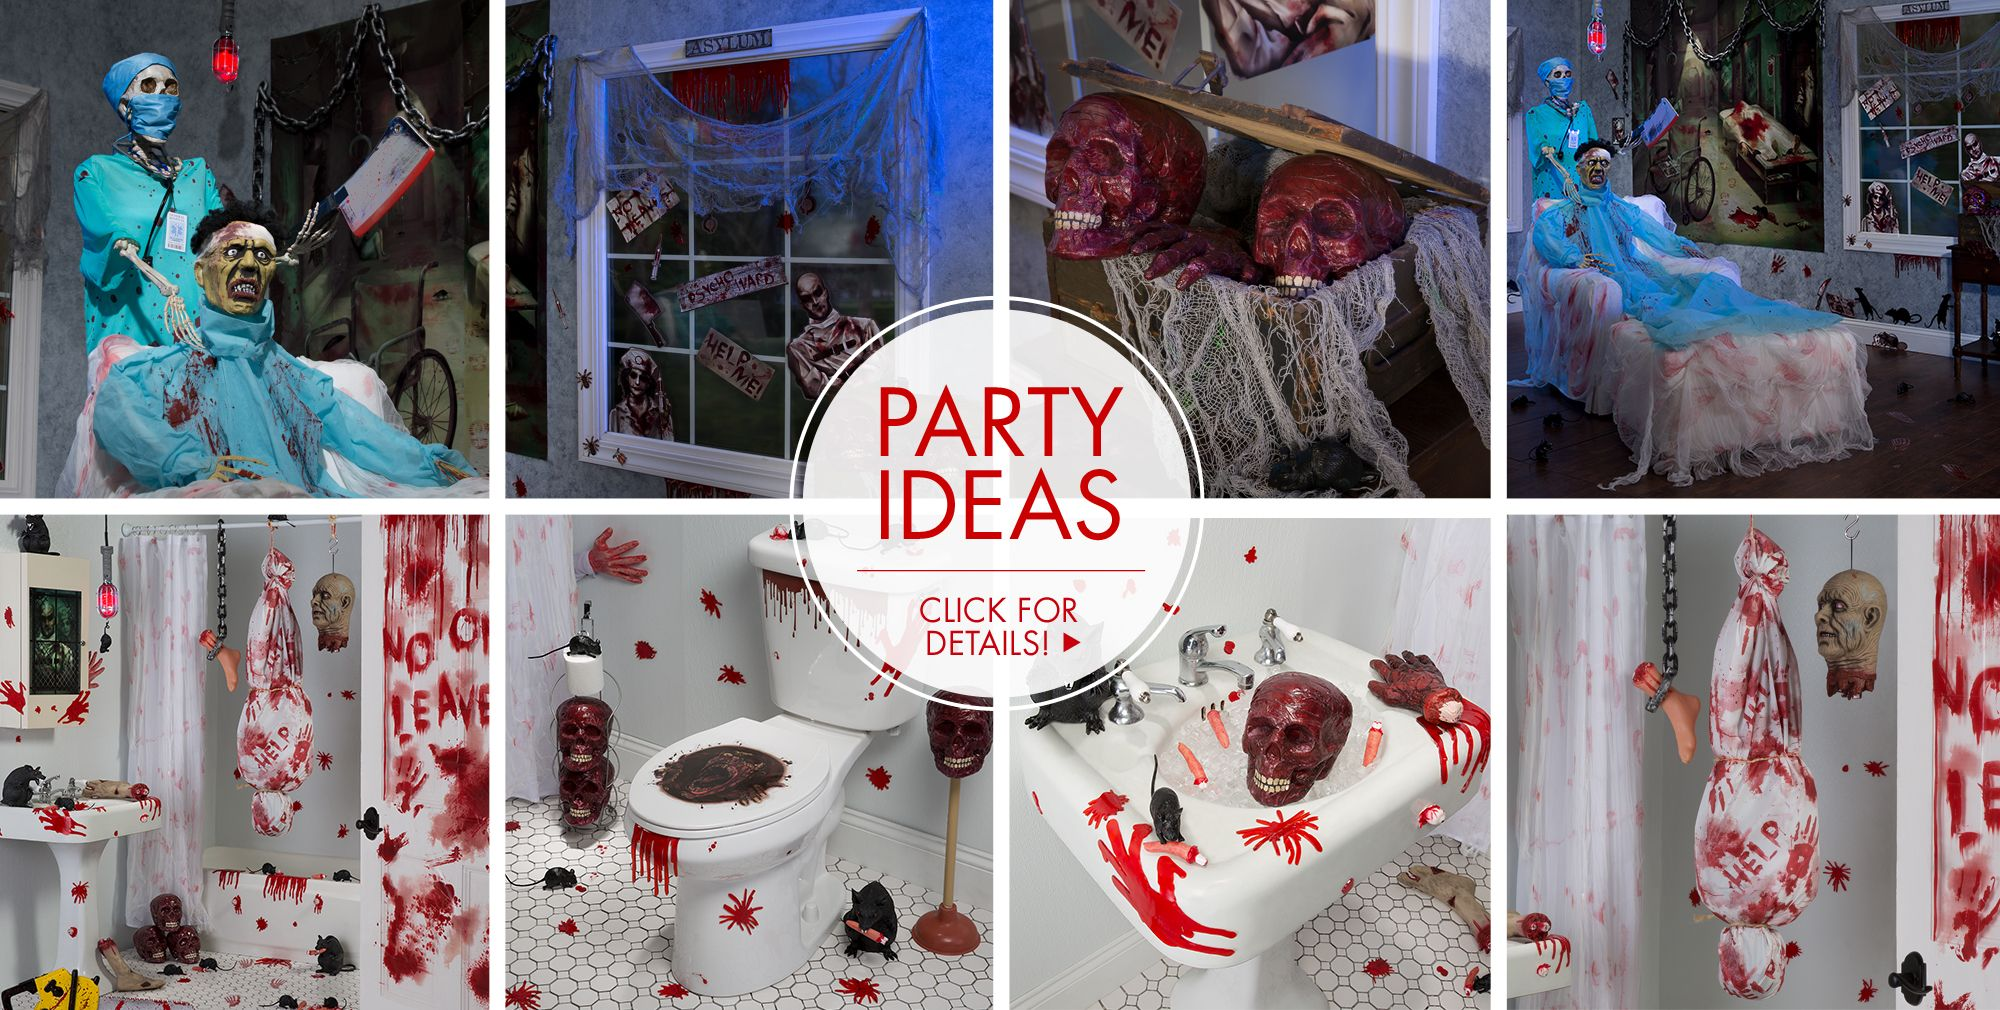 Asylum Halloween Decorations – Party Ideas